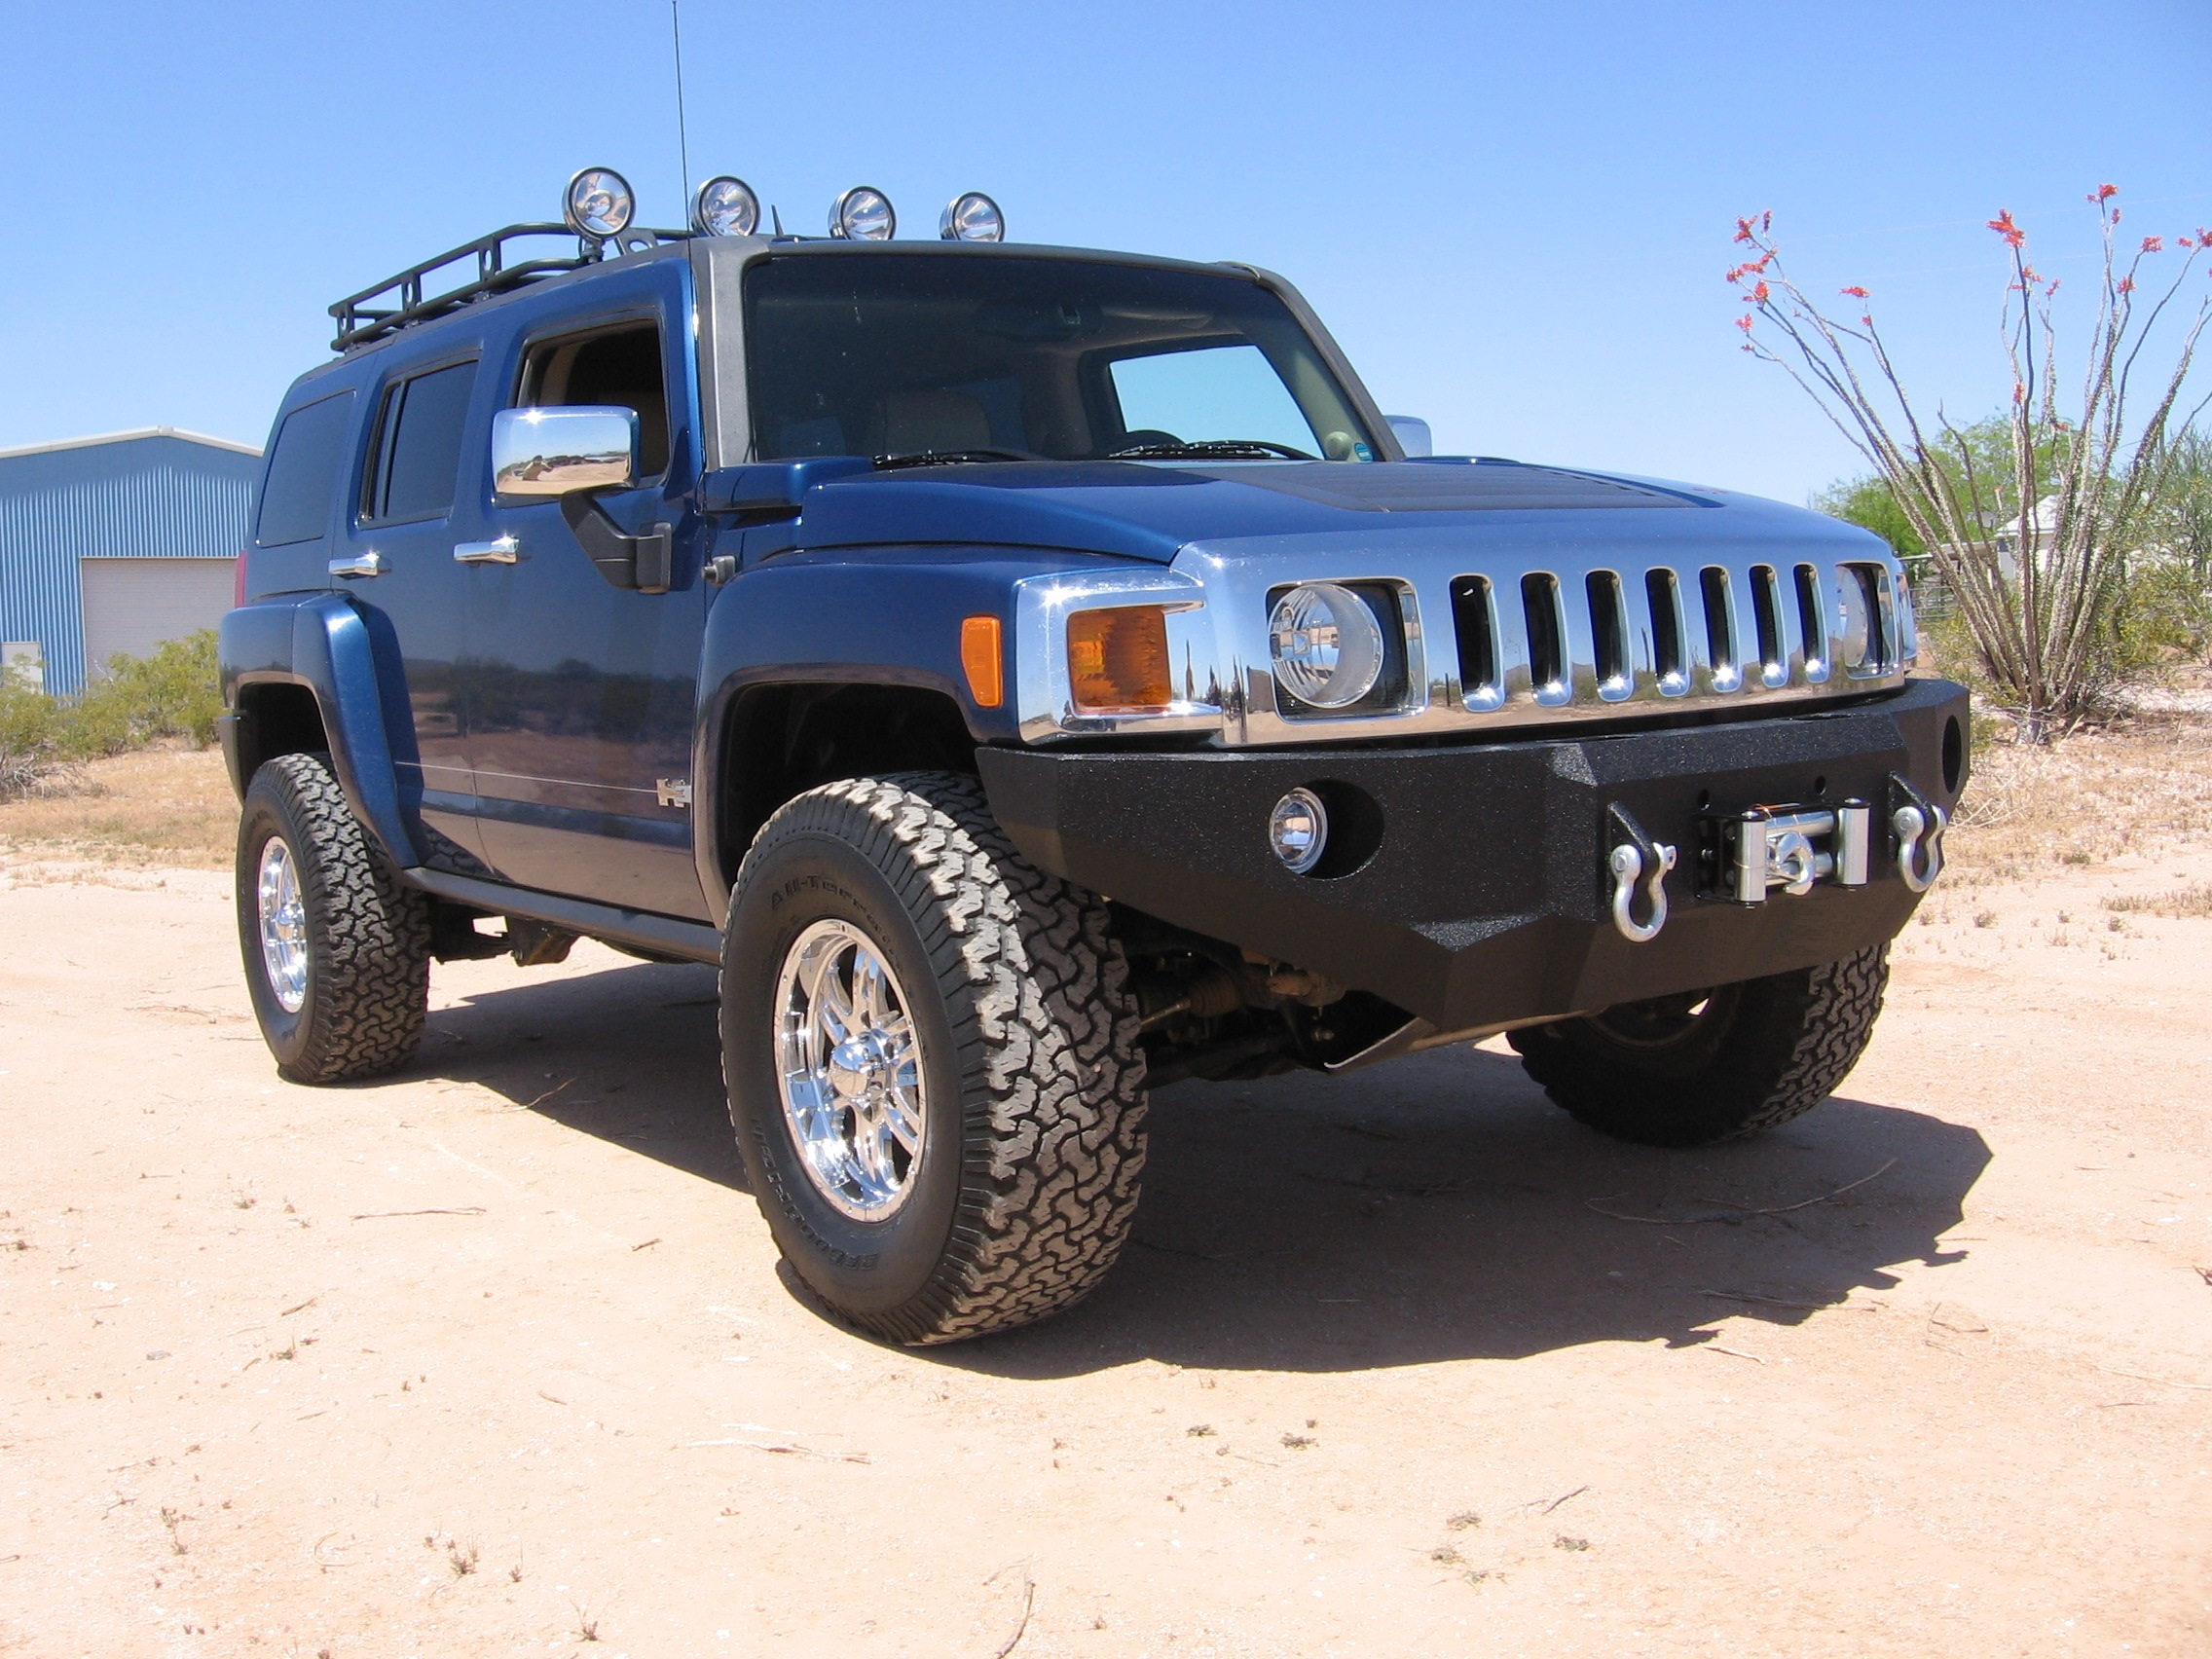 2005 Hummer H3 for sale at Red River Chevrolet! - YouTube